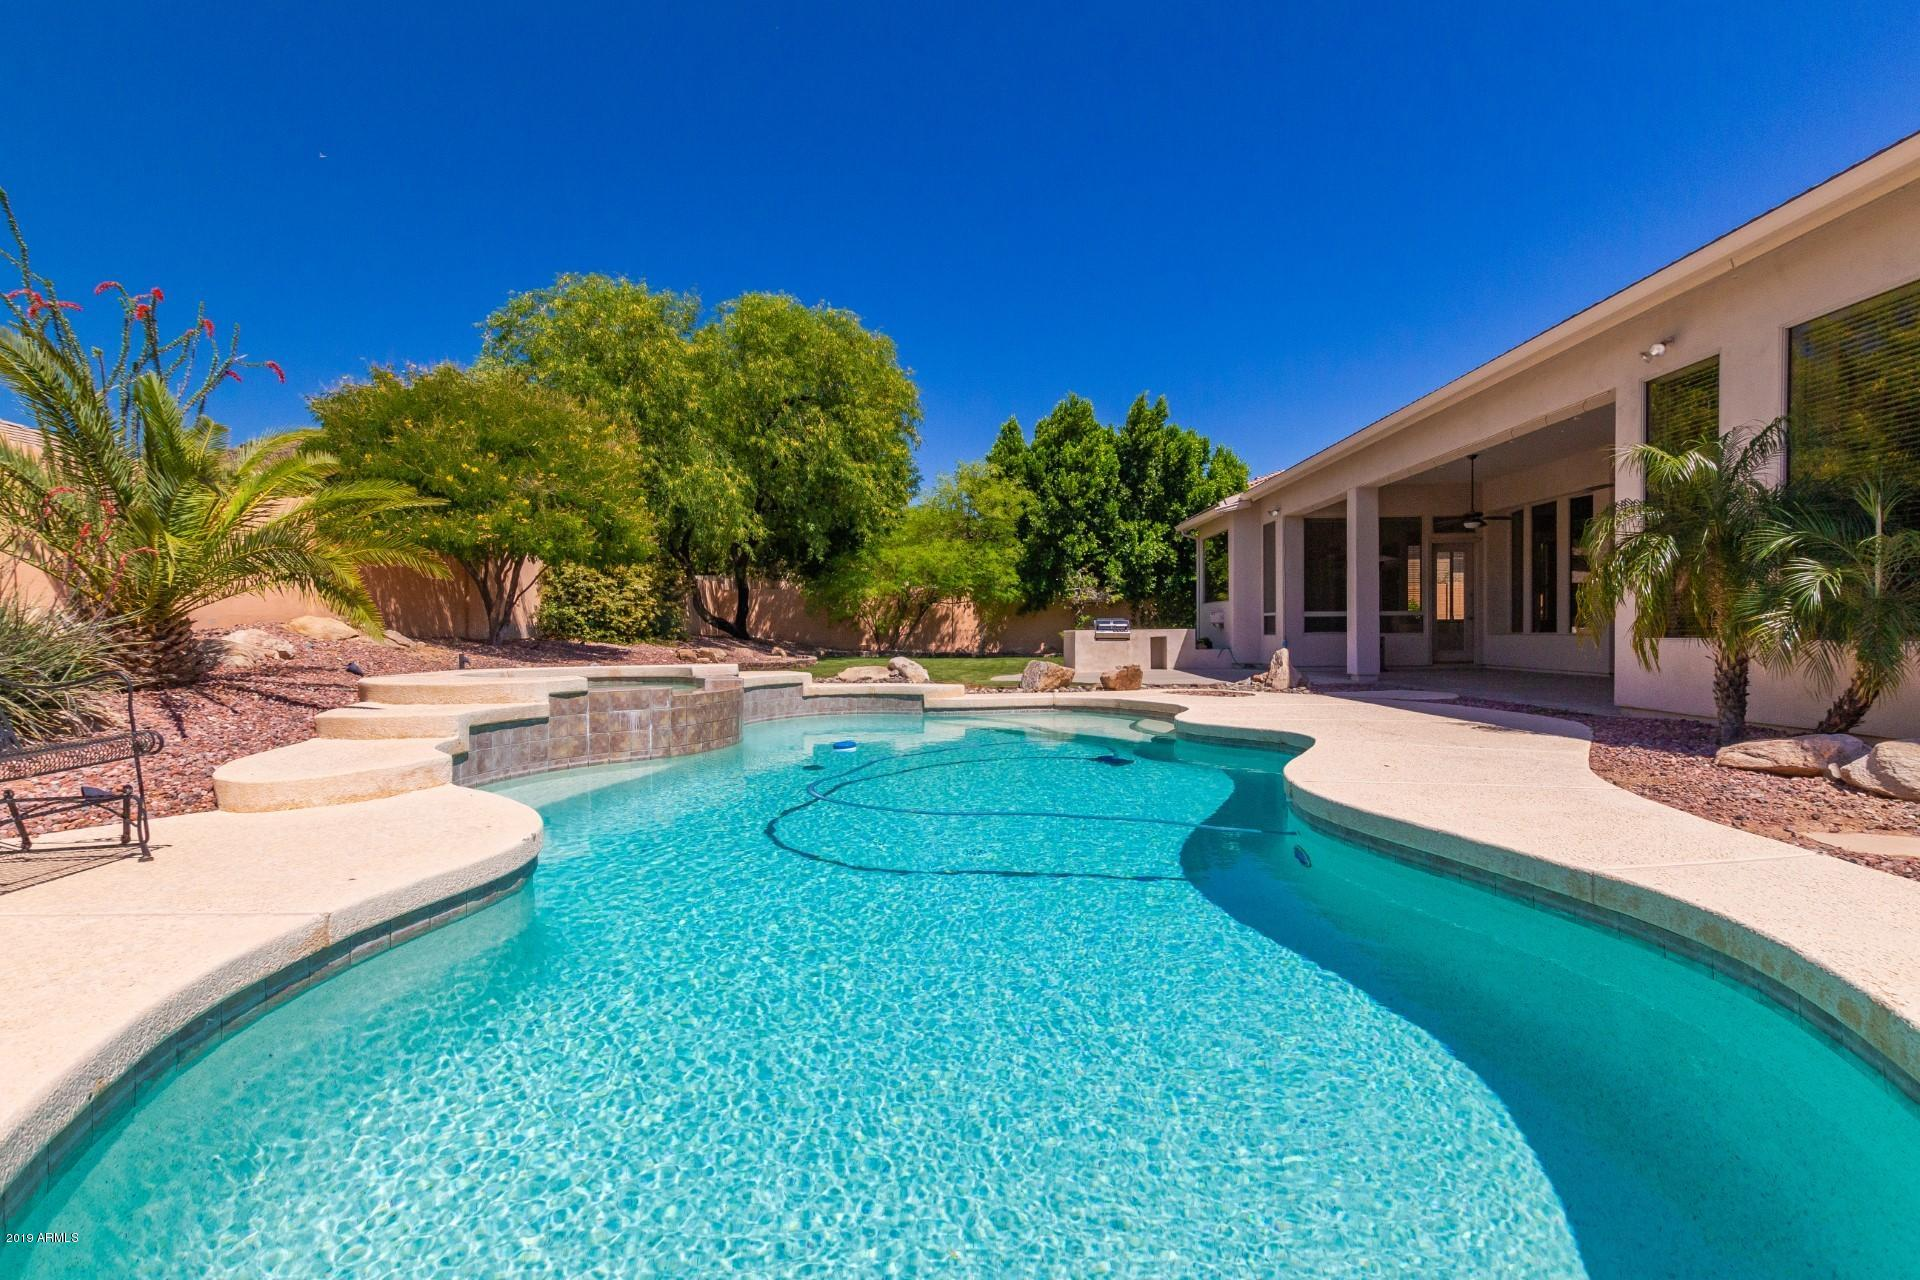 MLS 5919163 13406 E DEL TIMBRE Drive, Scottsdale, AZ 85259 Scottsdale AZ Private Pool